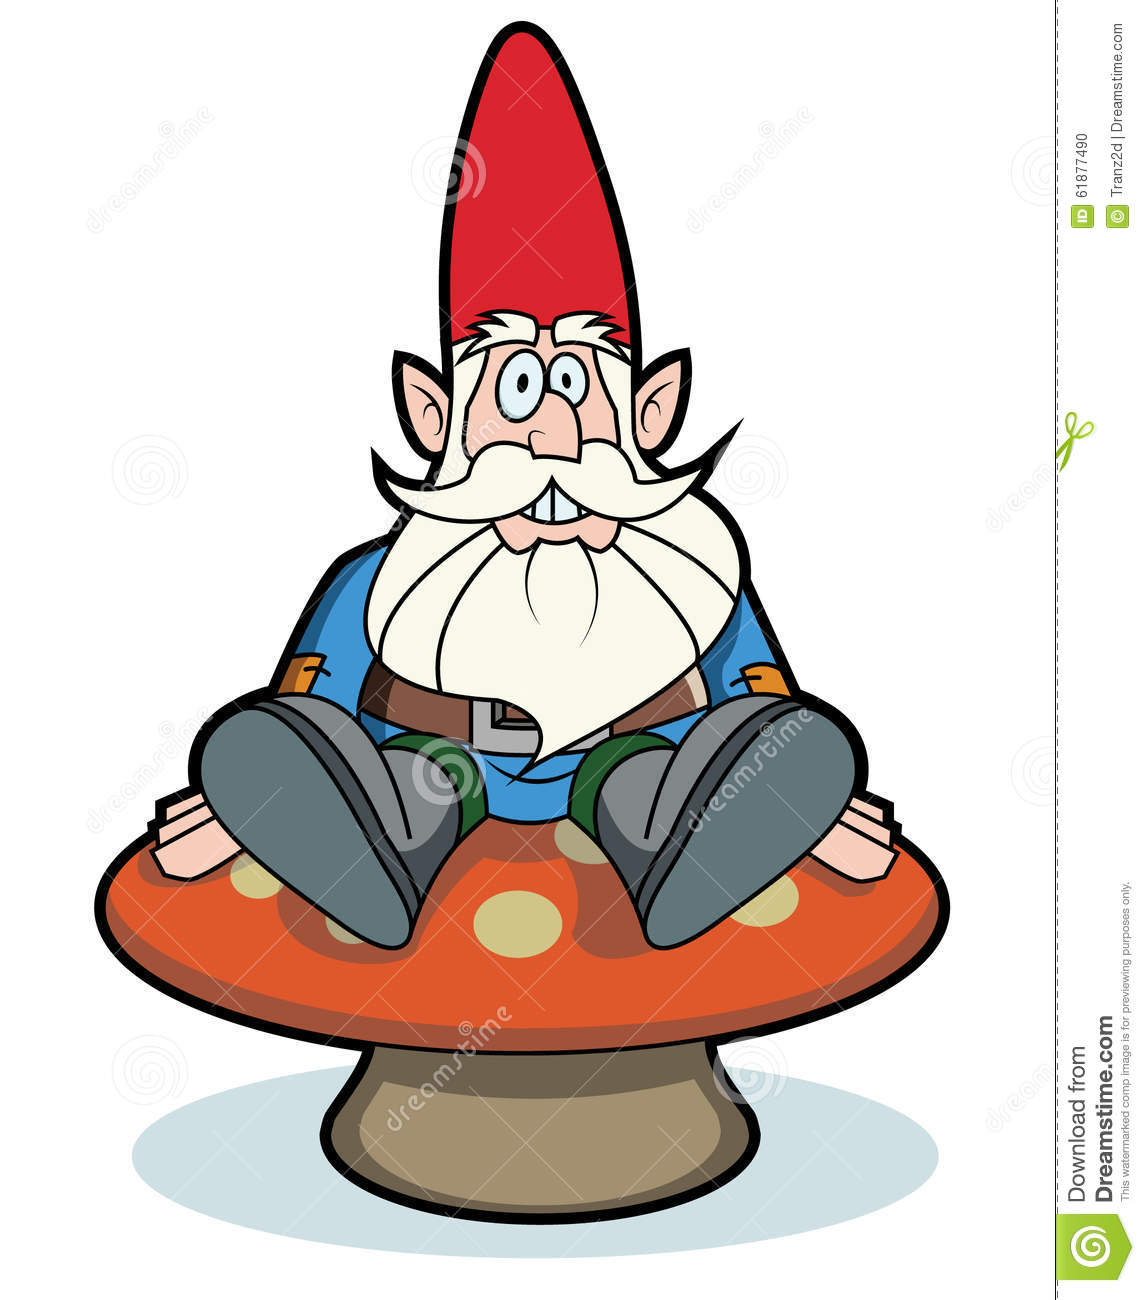 Gnome sitting on mushroom stock illustration. Illustration